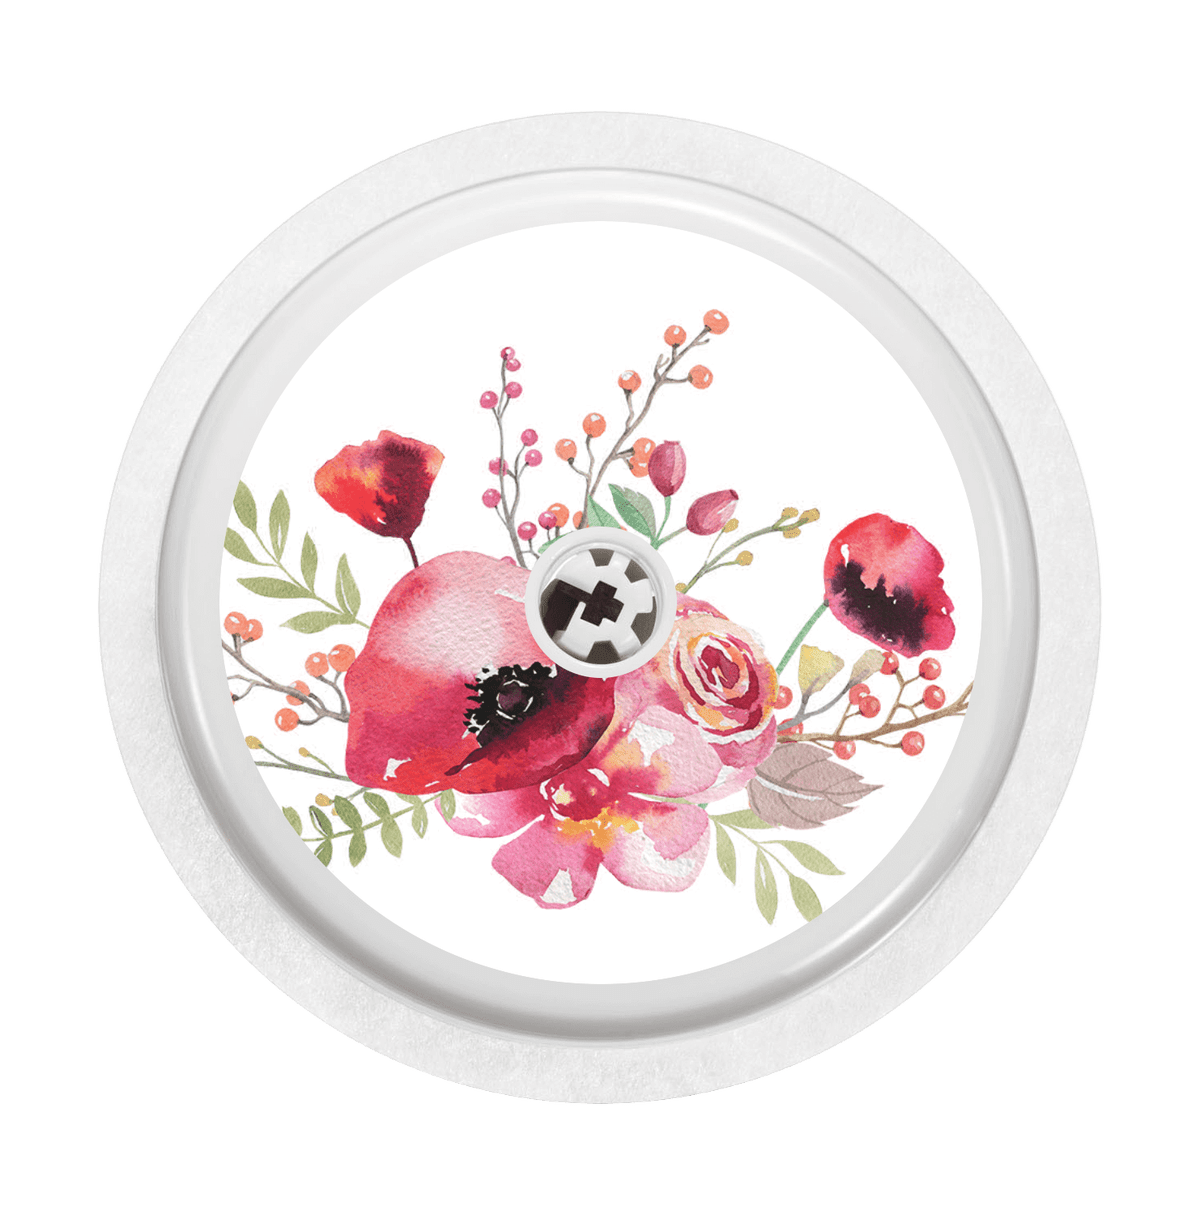 Image of Bouquet Freestyle Libre Sticker